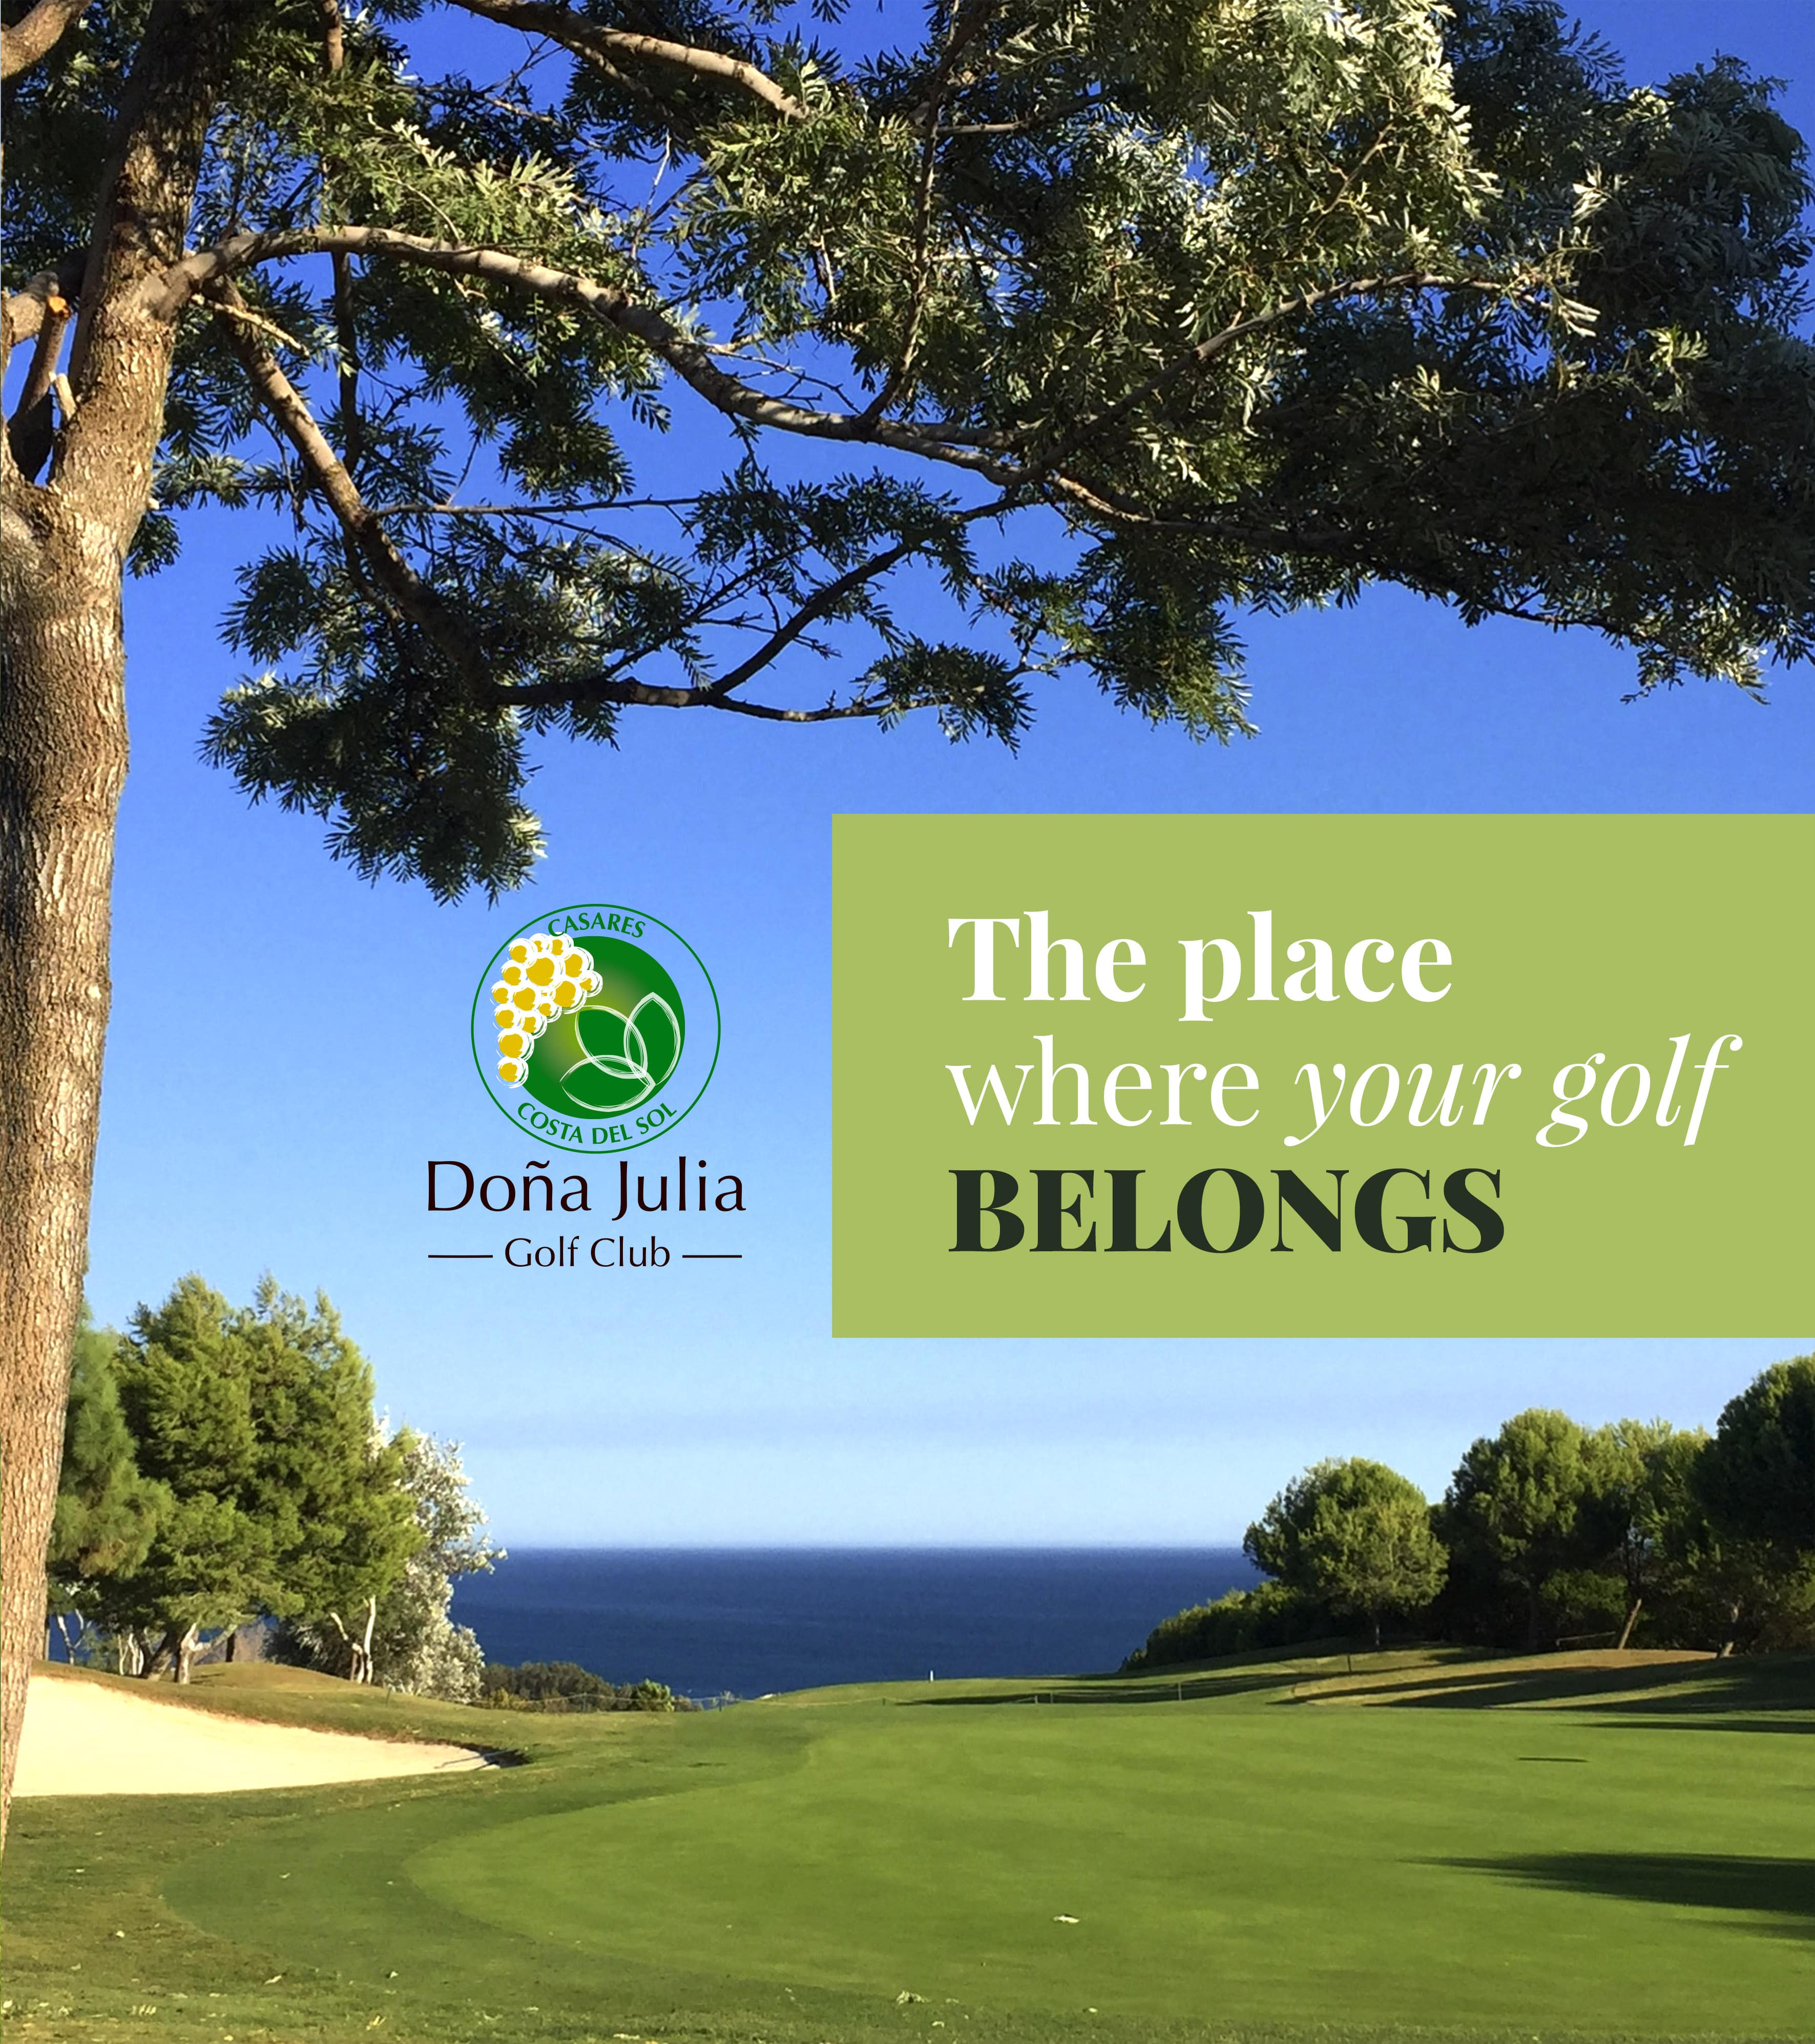 The place where your golf belongs